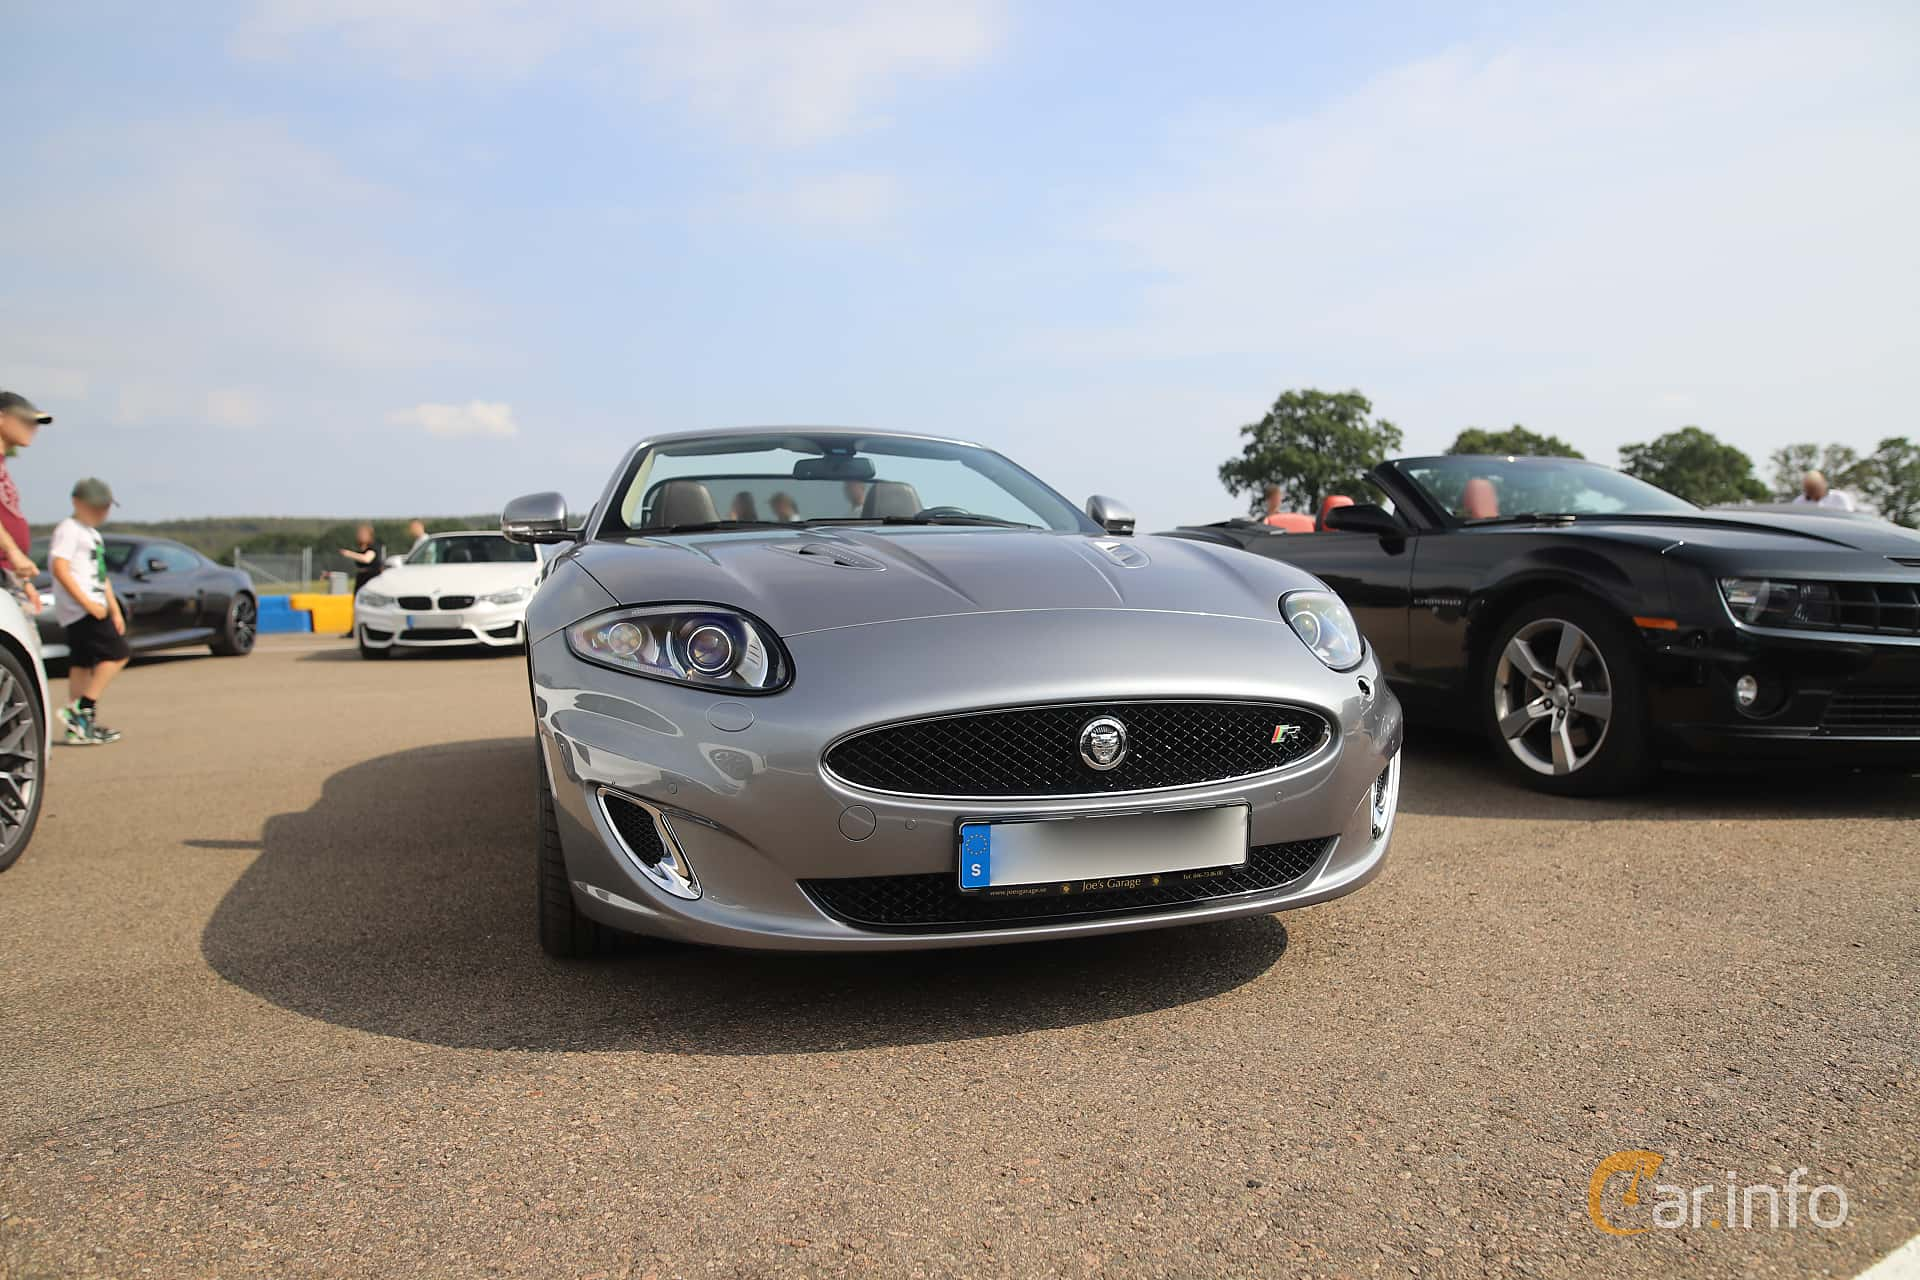 Jaguar XKR Convertible 5.0 V8 Automatic, 510hp, 2013 at Autoropa Racing day Knutstorp 2019